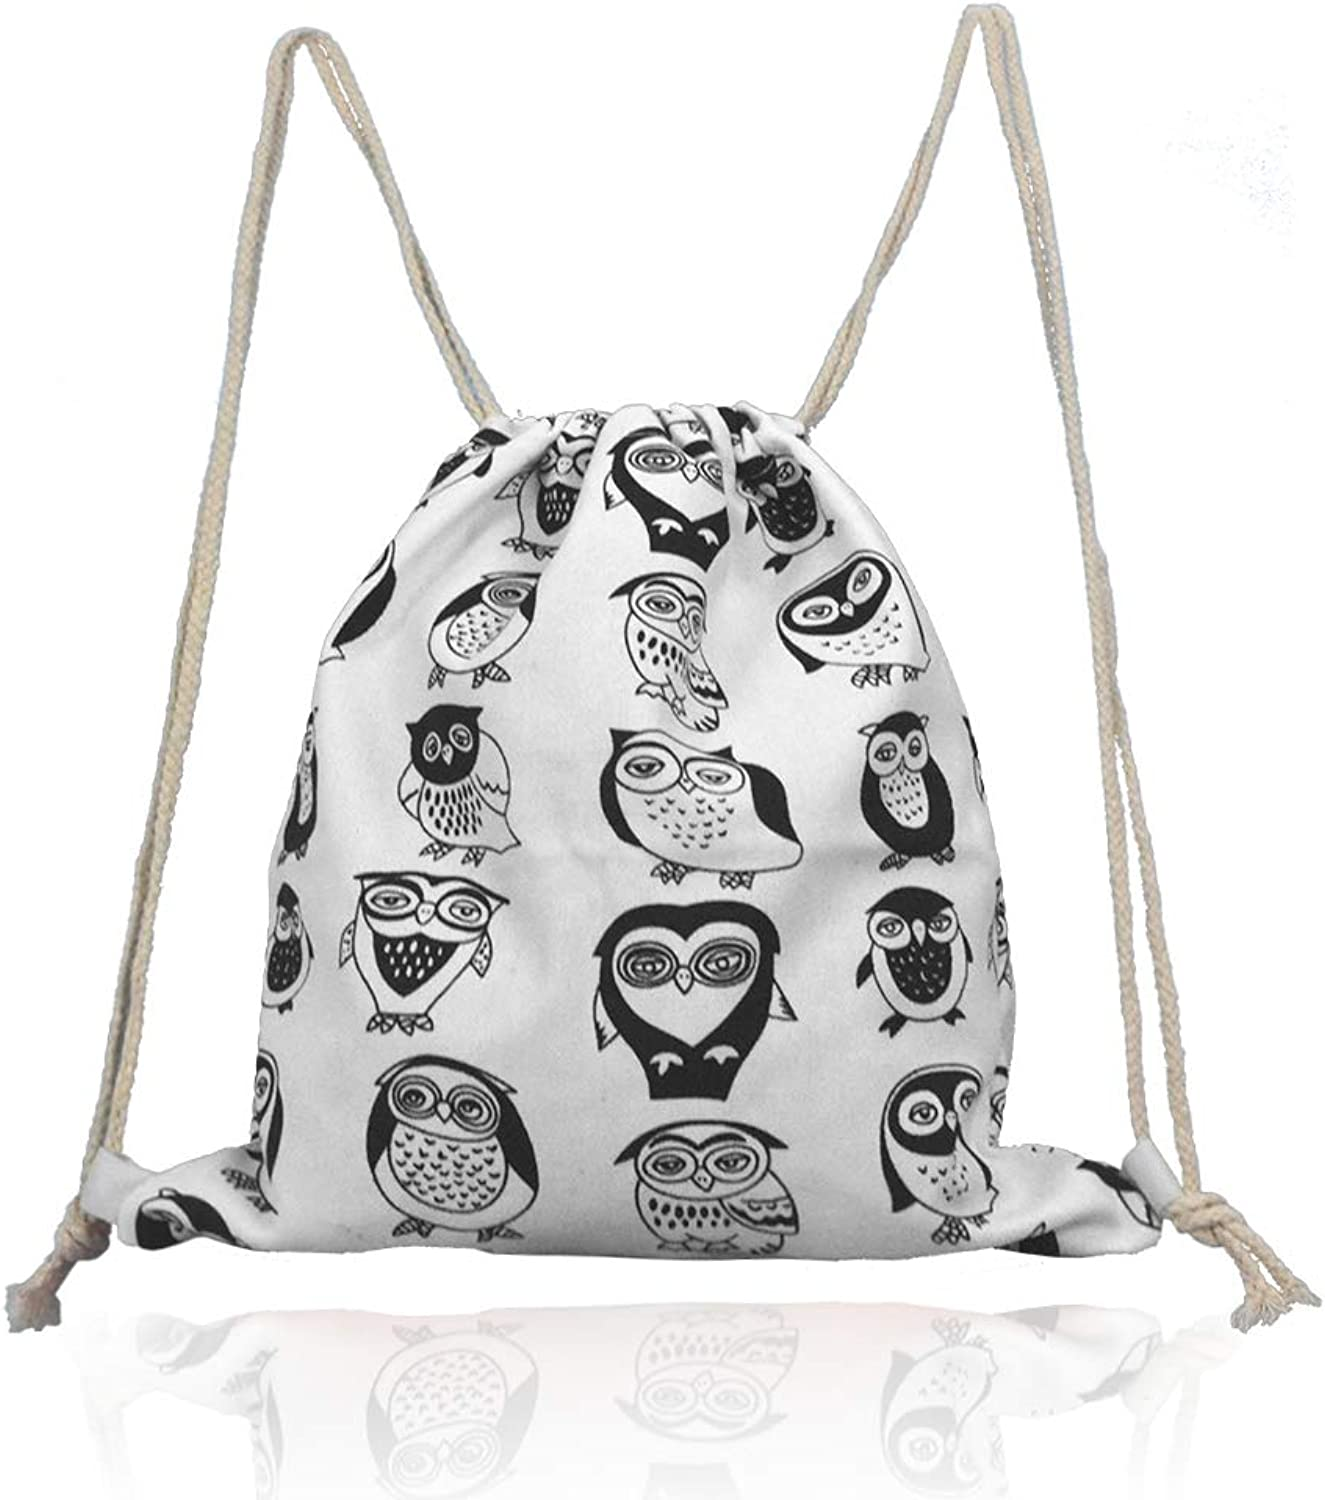 Lacheln Canvas Drawstring Backpack Travel Sackpack Bag Gym Outdoor Sports Portable Daypack for Girl Boys Woman Female (Cartoon Owl)